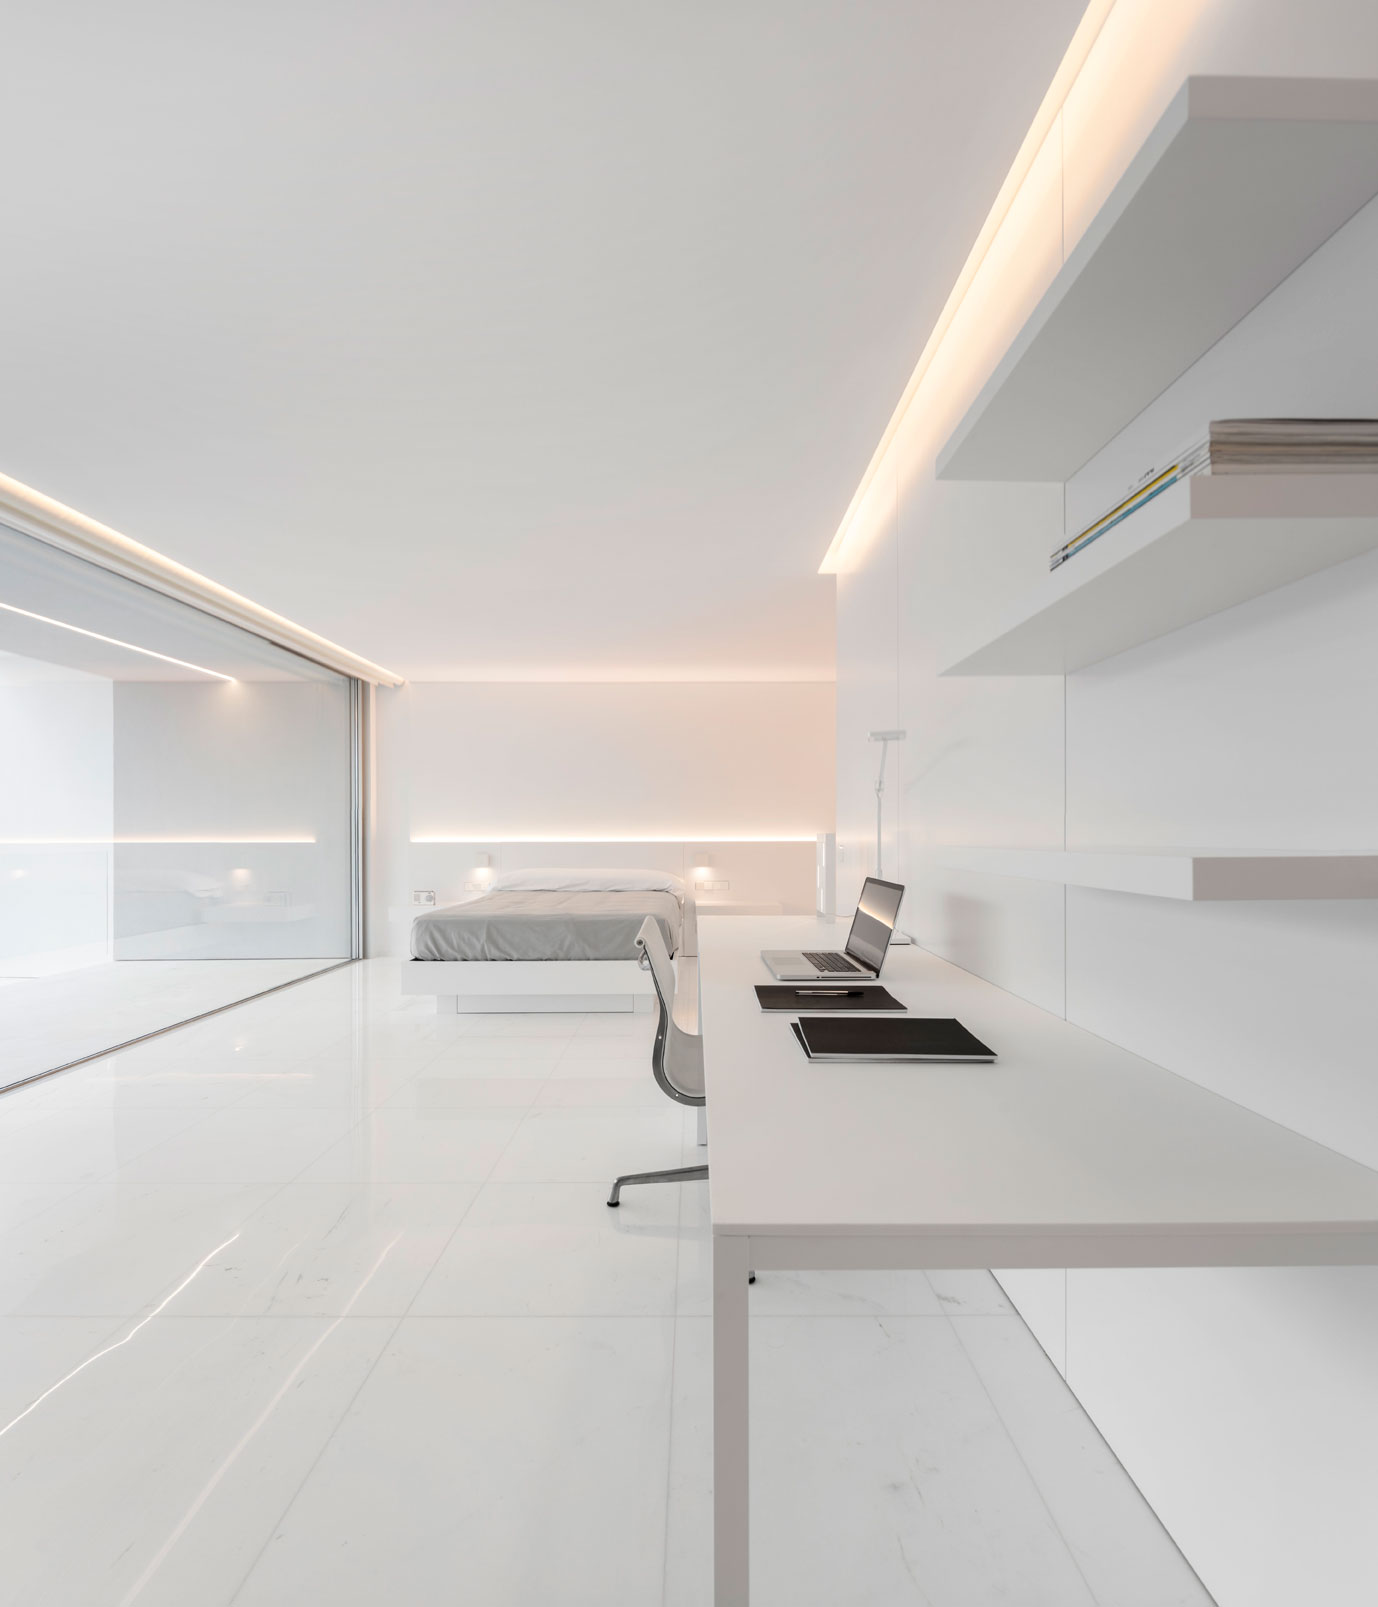 dissenycv-es-fran-silvestre-arquitectos_-house-betwwen-the-pine-forest_-29